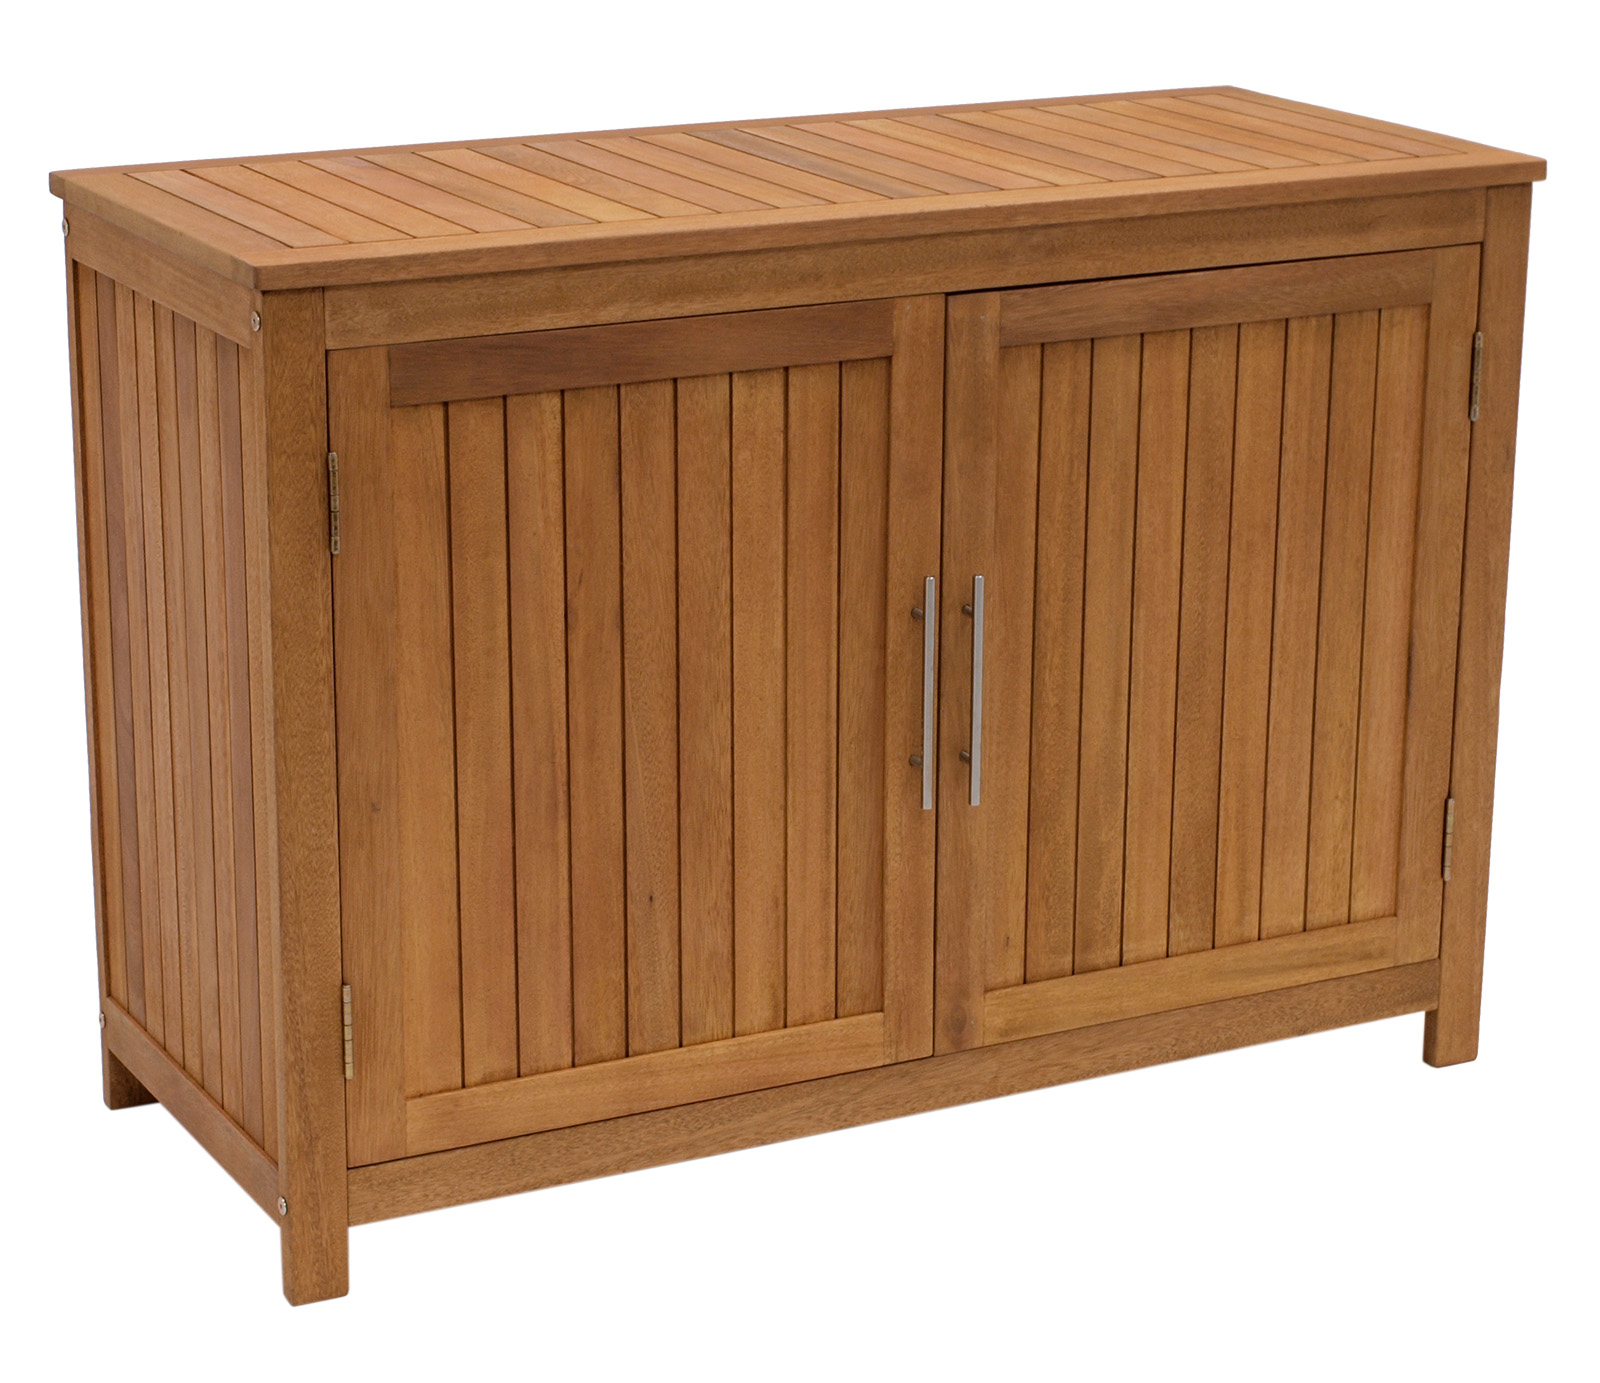 gartenschrank holz ger teschrank pflanztisch gartenm bel truhe 120x55x85cm fsc ebay. Black Bedroom Furniture Sets. Home Design Ideas